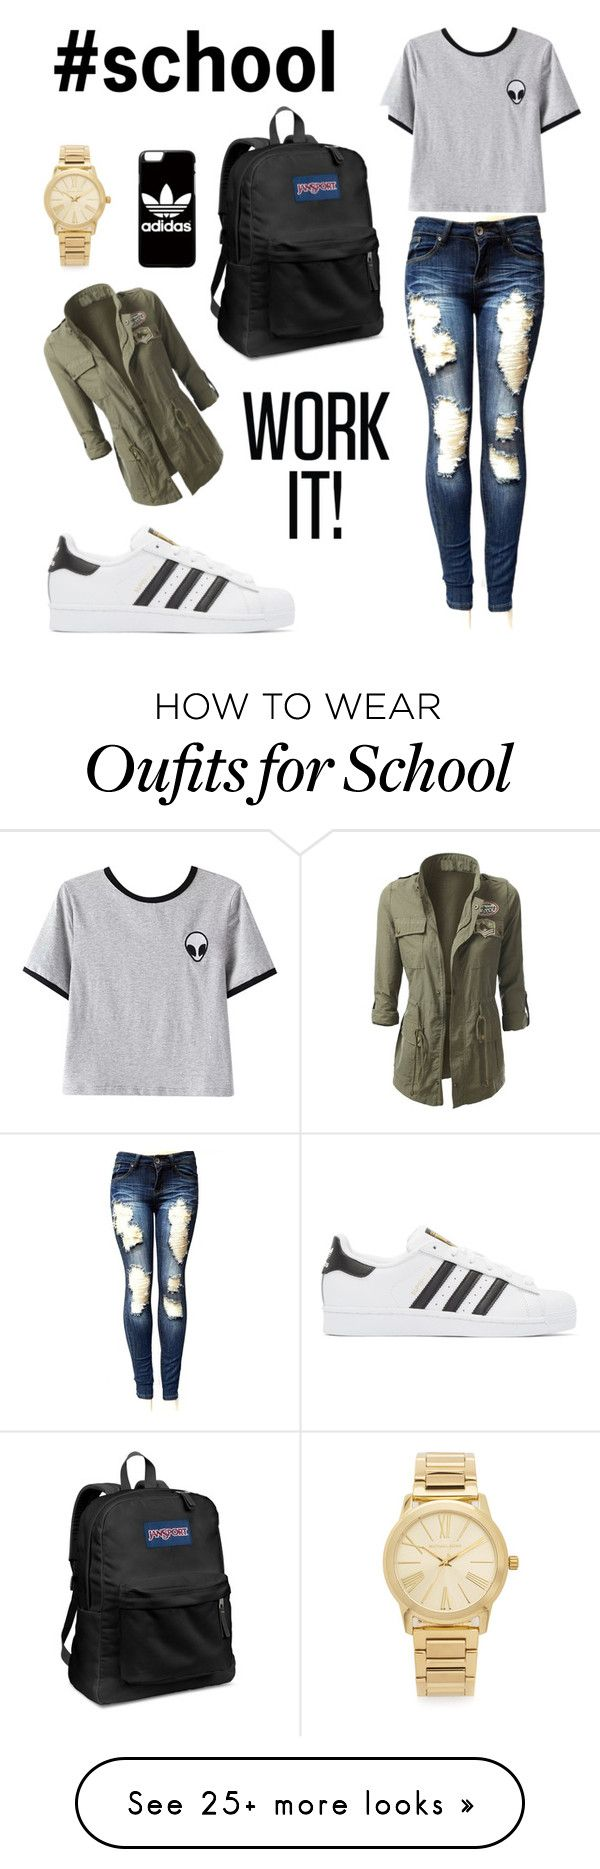 """""""#school"""" by jeannette-palacios on Polyvore featuring adidas Originals, Chicnova Fashion, JanSport, adidas and Michael Kors"""